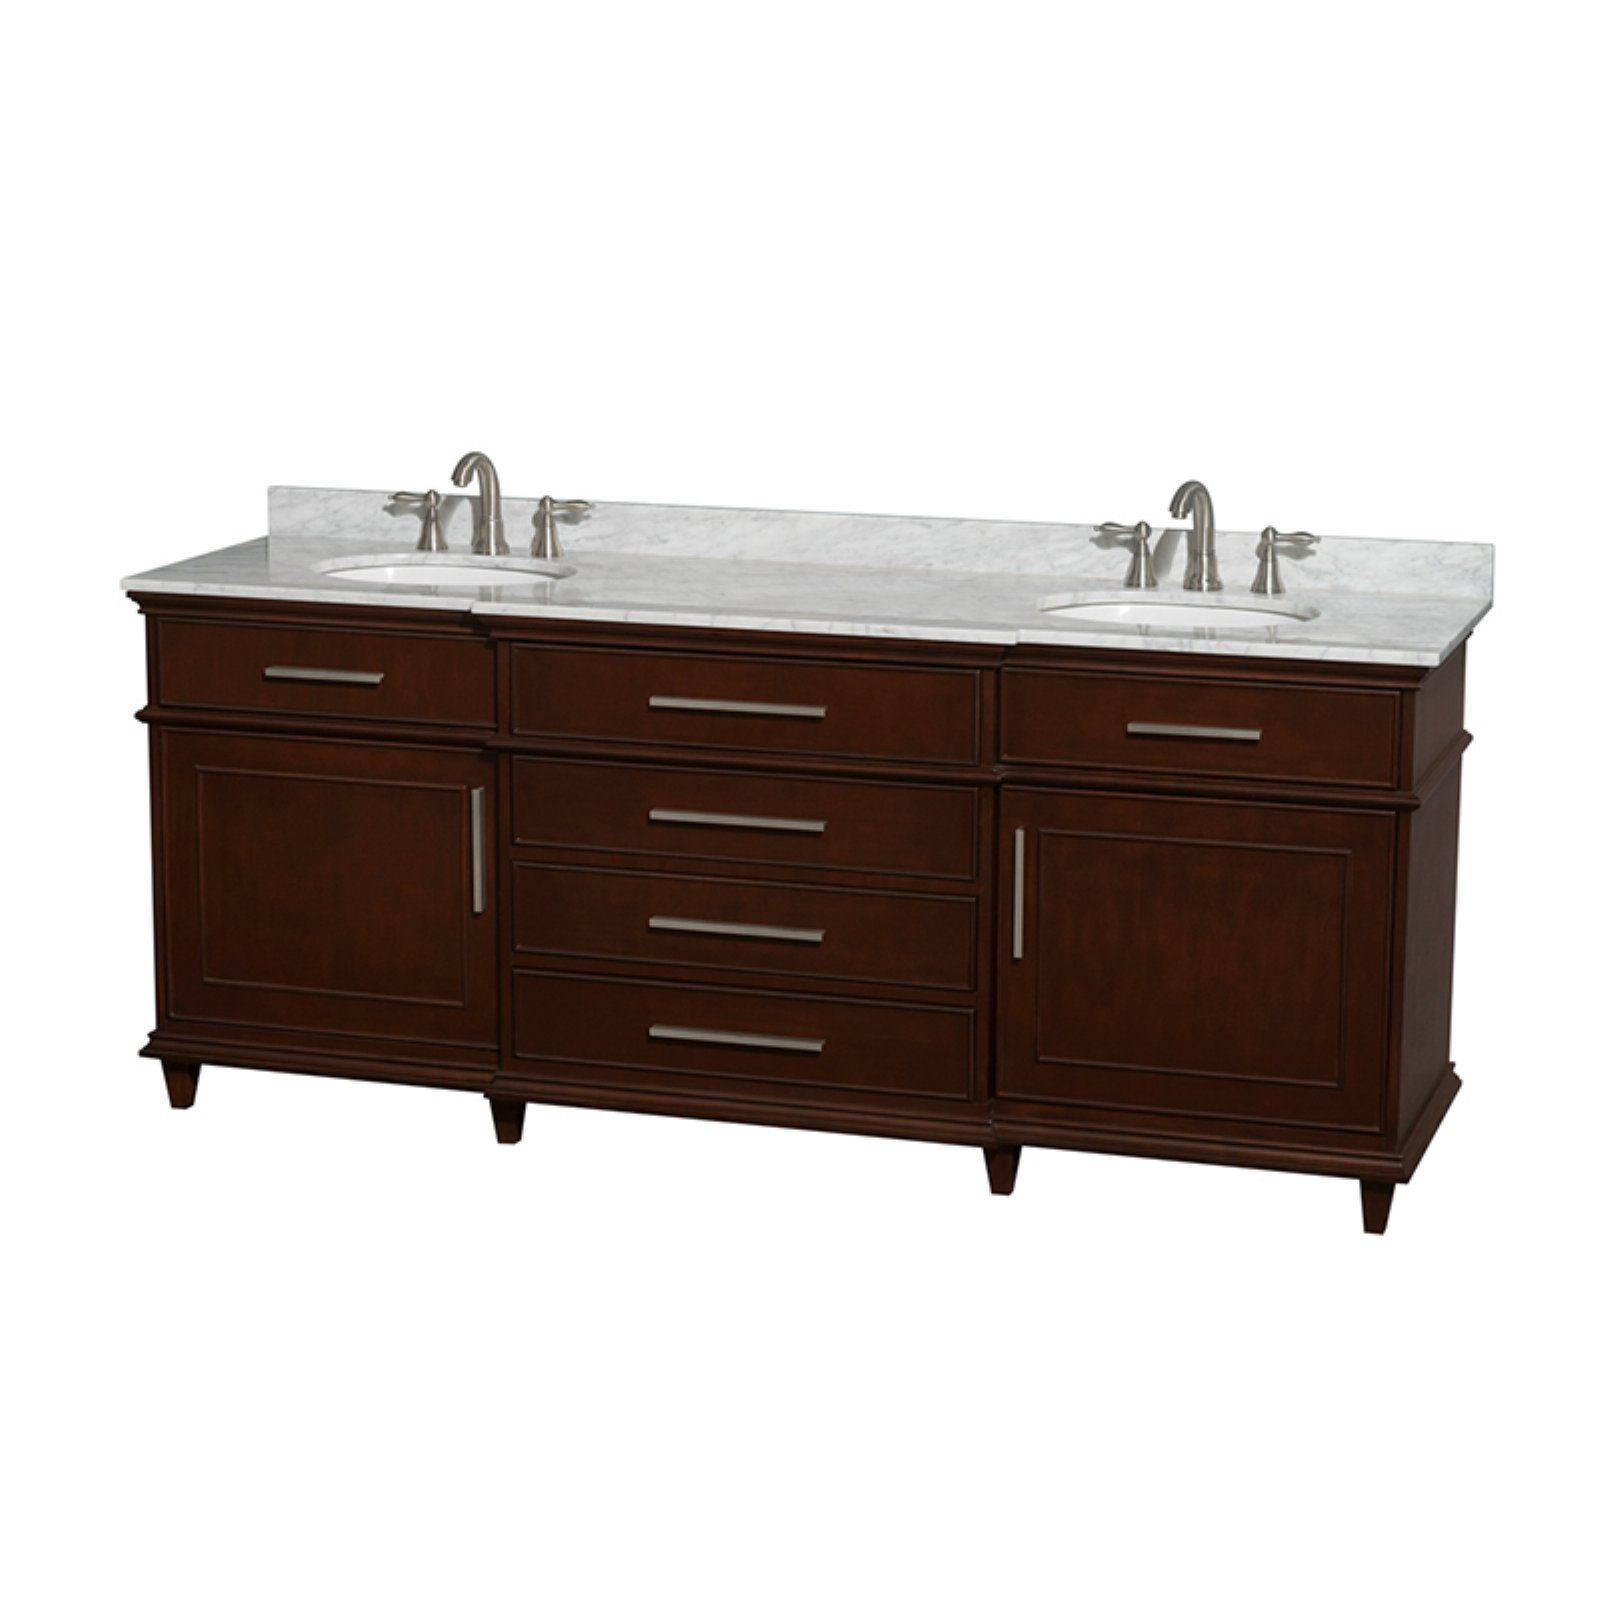 Wyndham Collection Wcv171780dcd Berkeley 80 In Double Bathroom